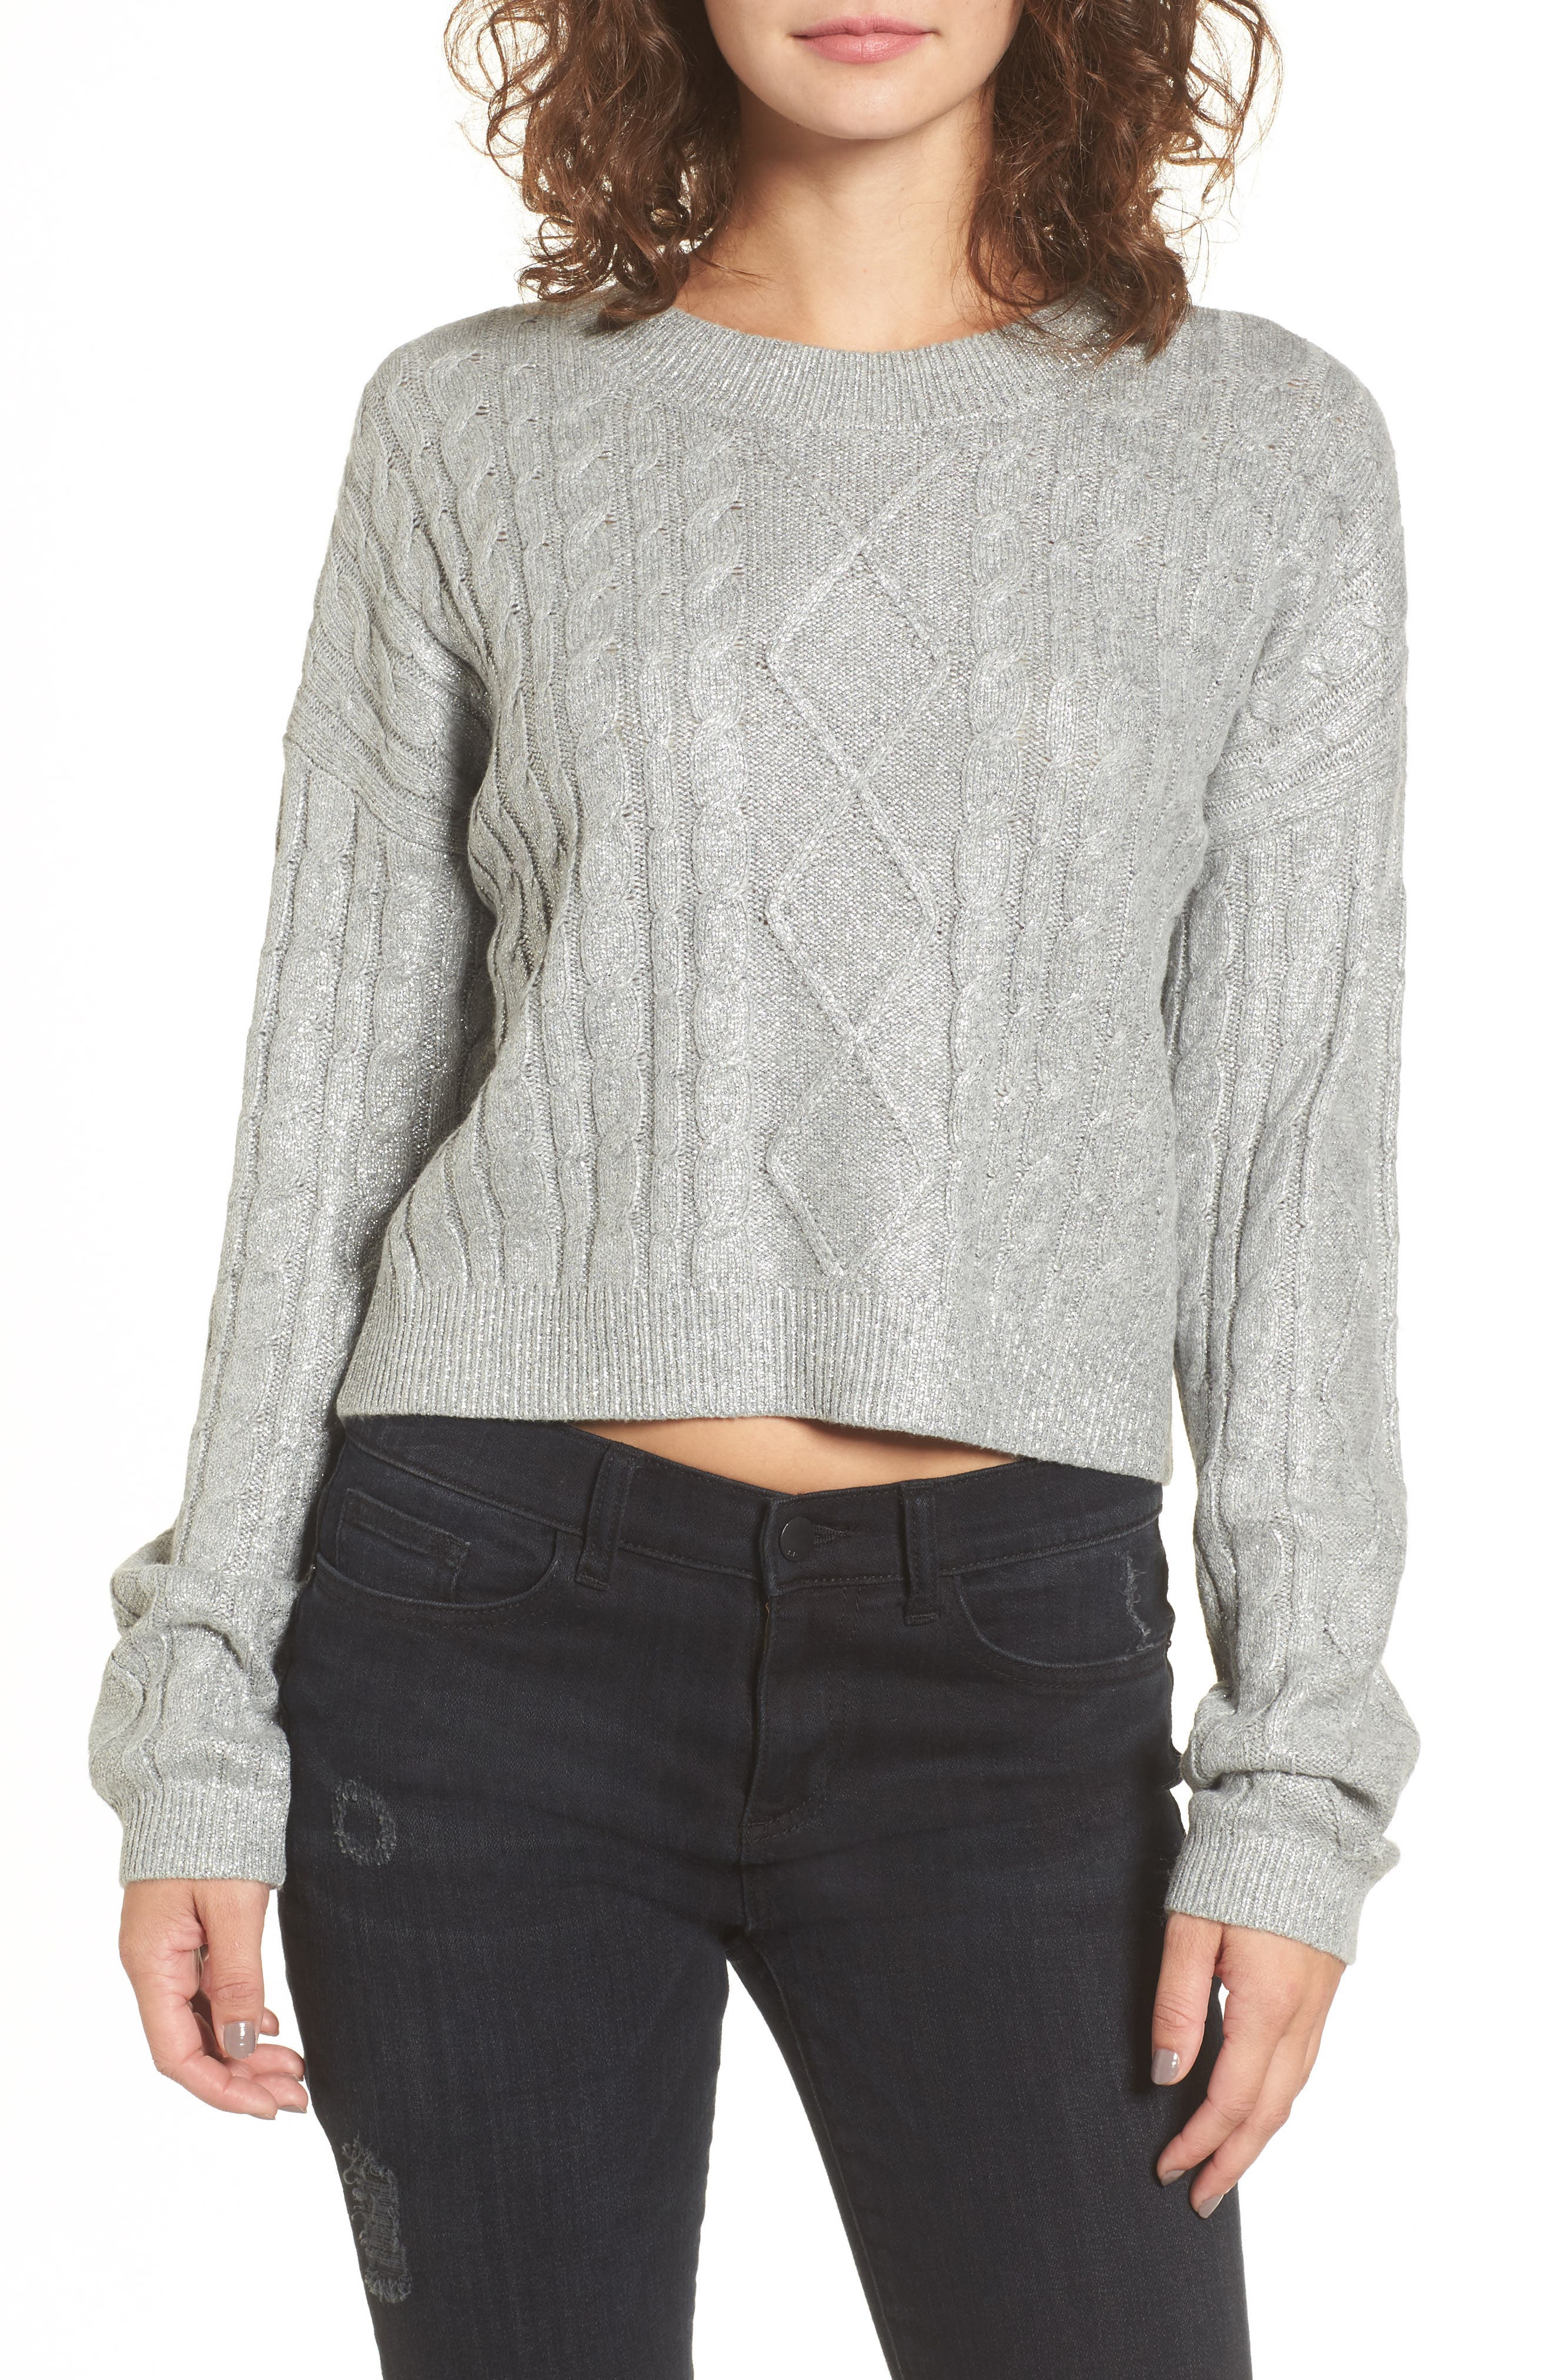 Main Image - BP. Metallic Cable Knit Sweater